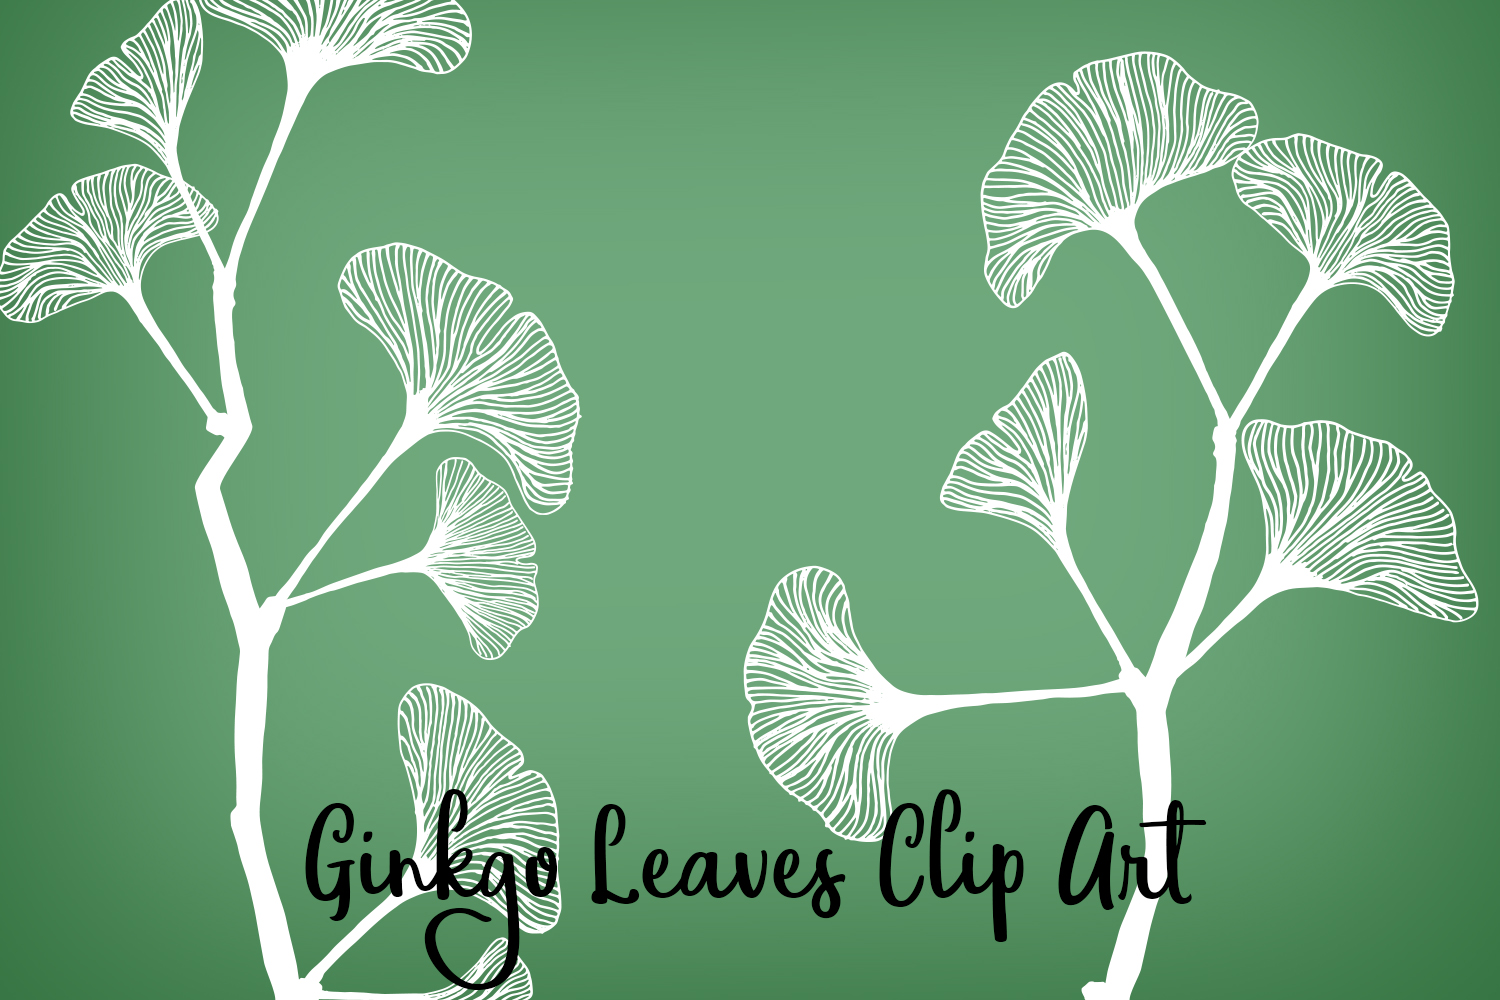 Ginkgo Leaves Clip Art, Vectors, PNGs and Digital Brushes example image 1